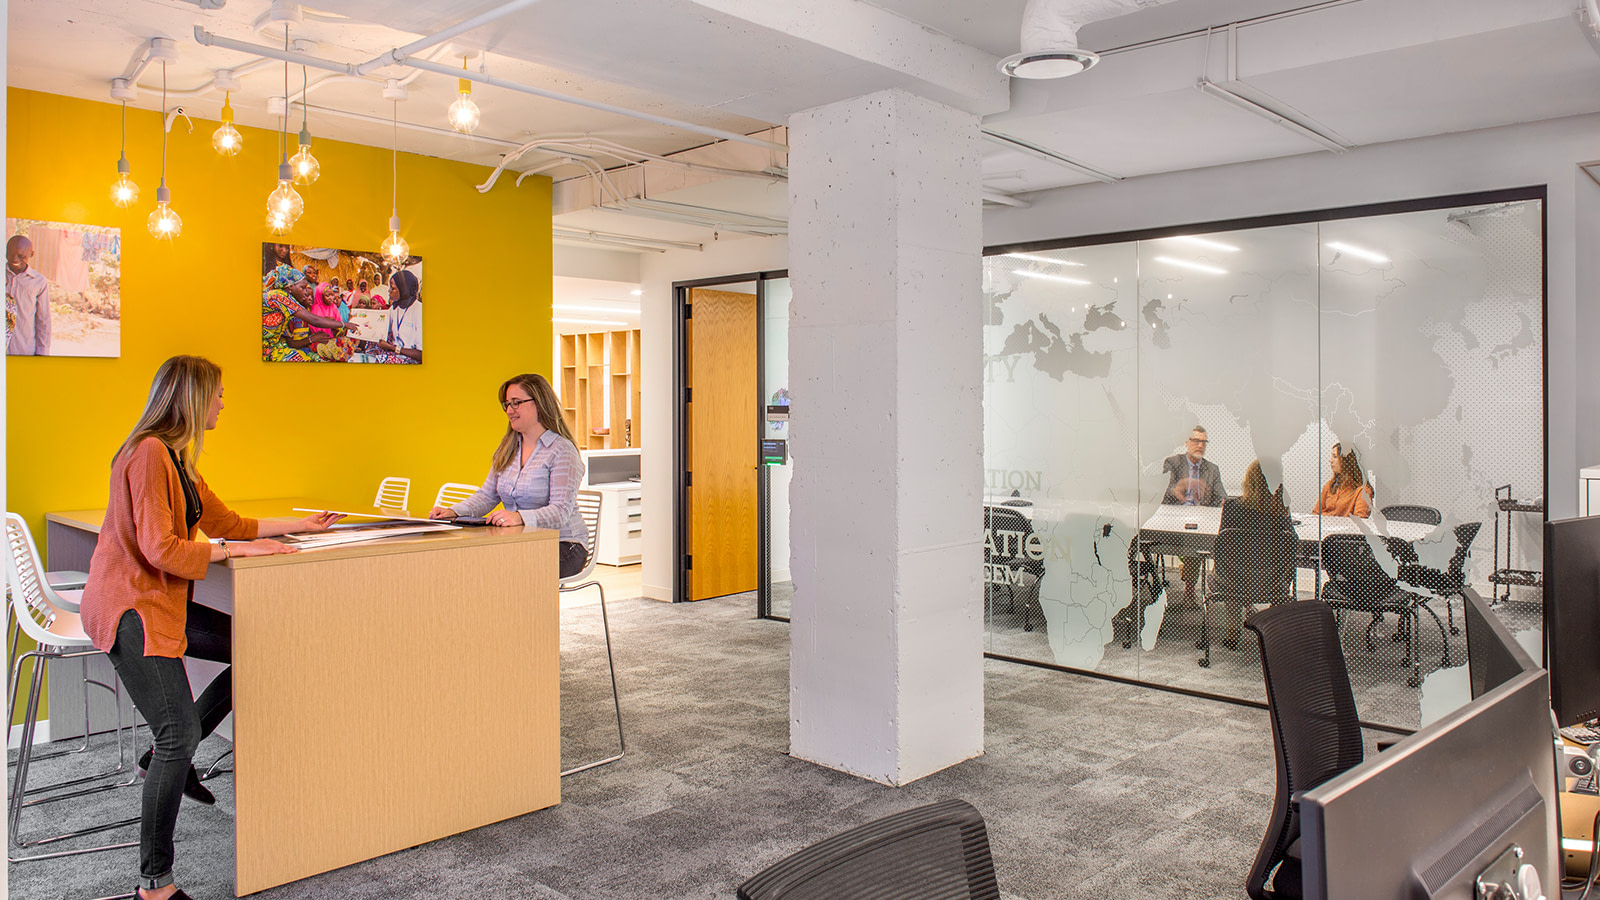 The graphic designs incorporated into this non-profits headquarters focus on the people they serve.